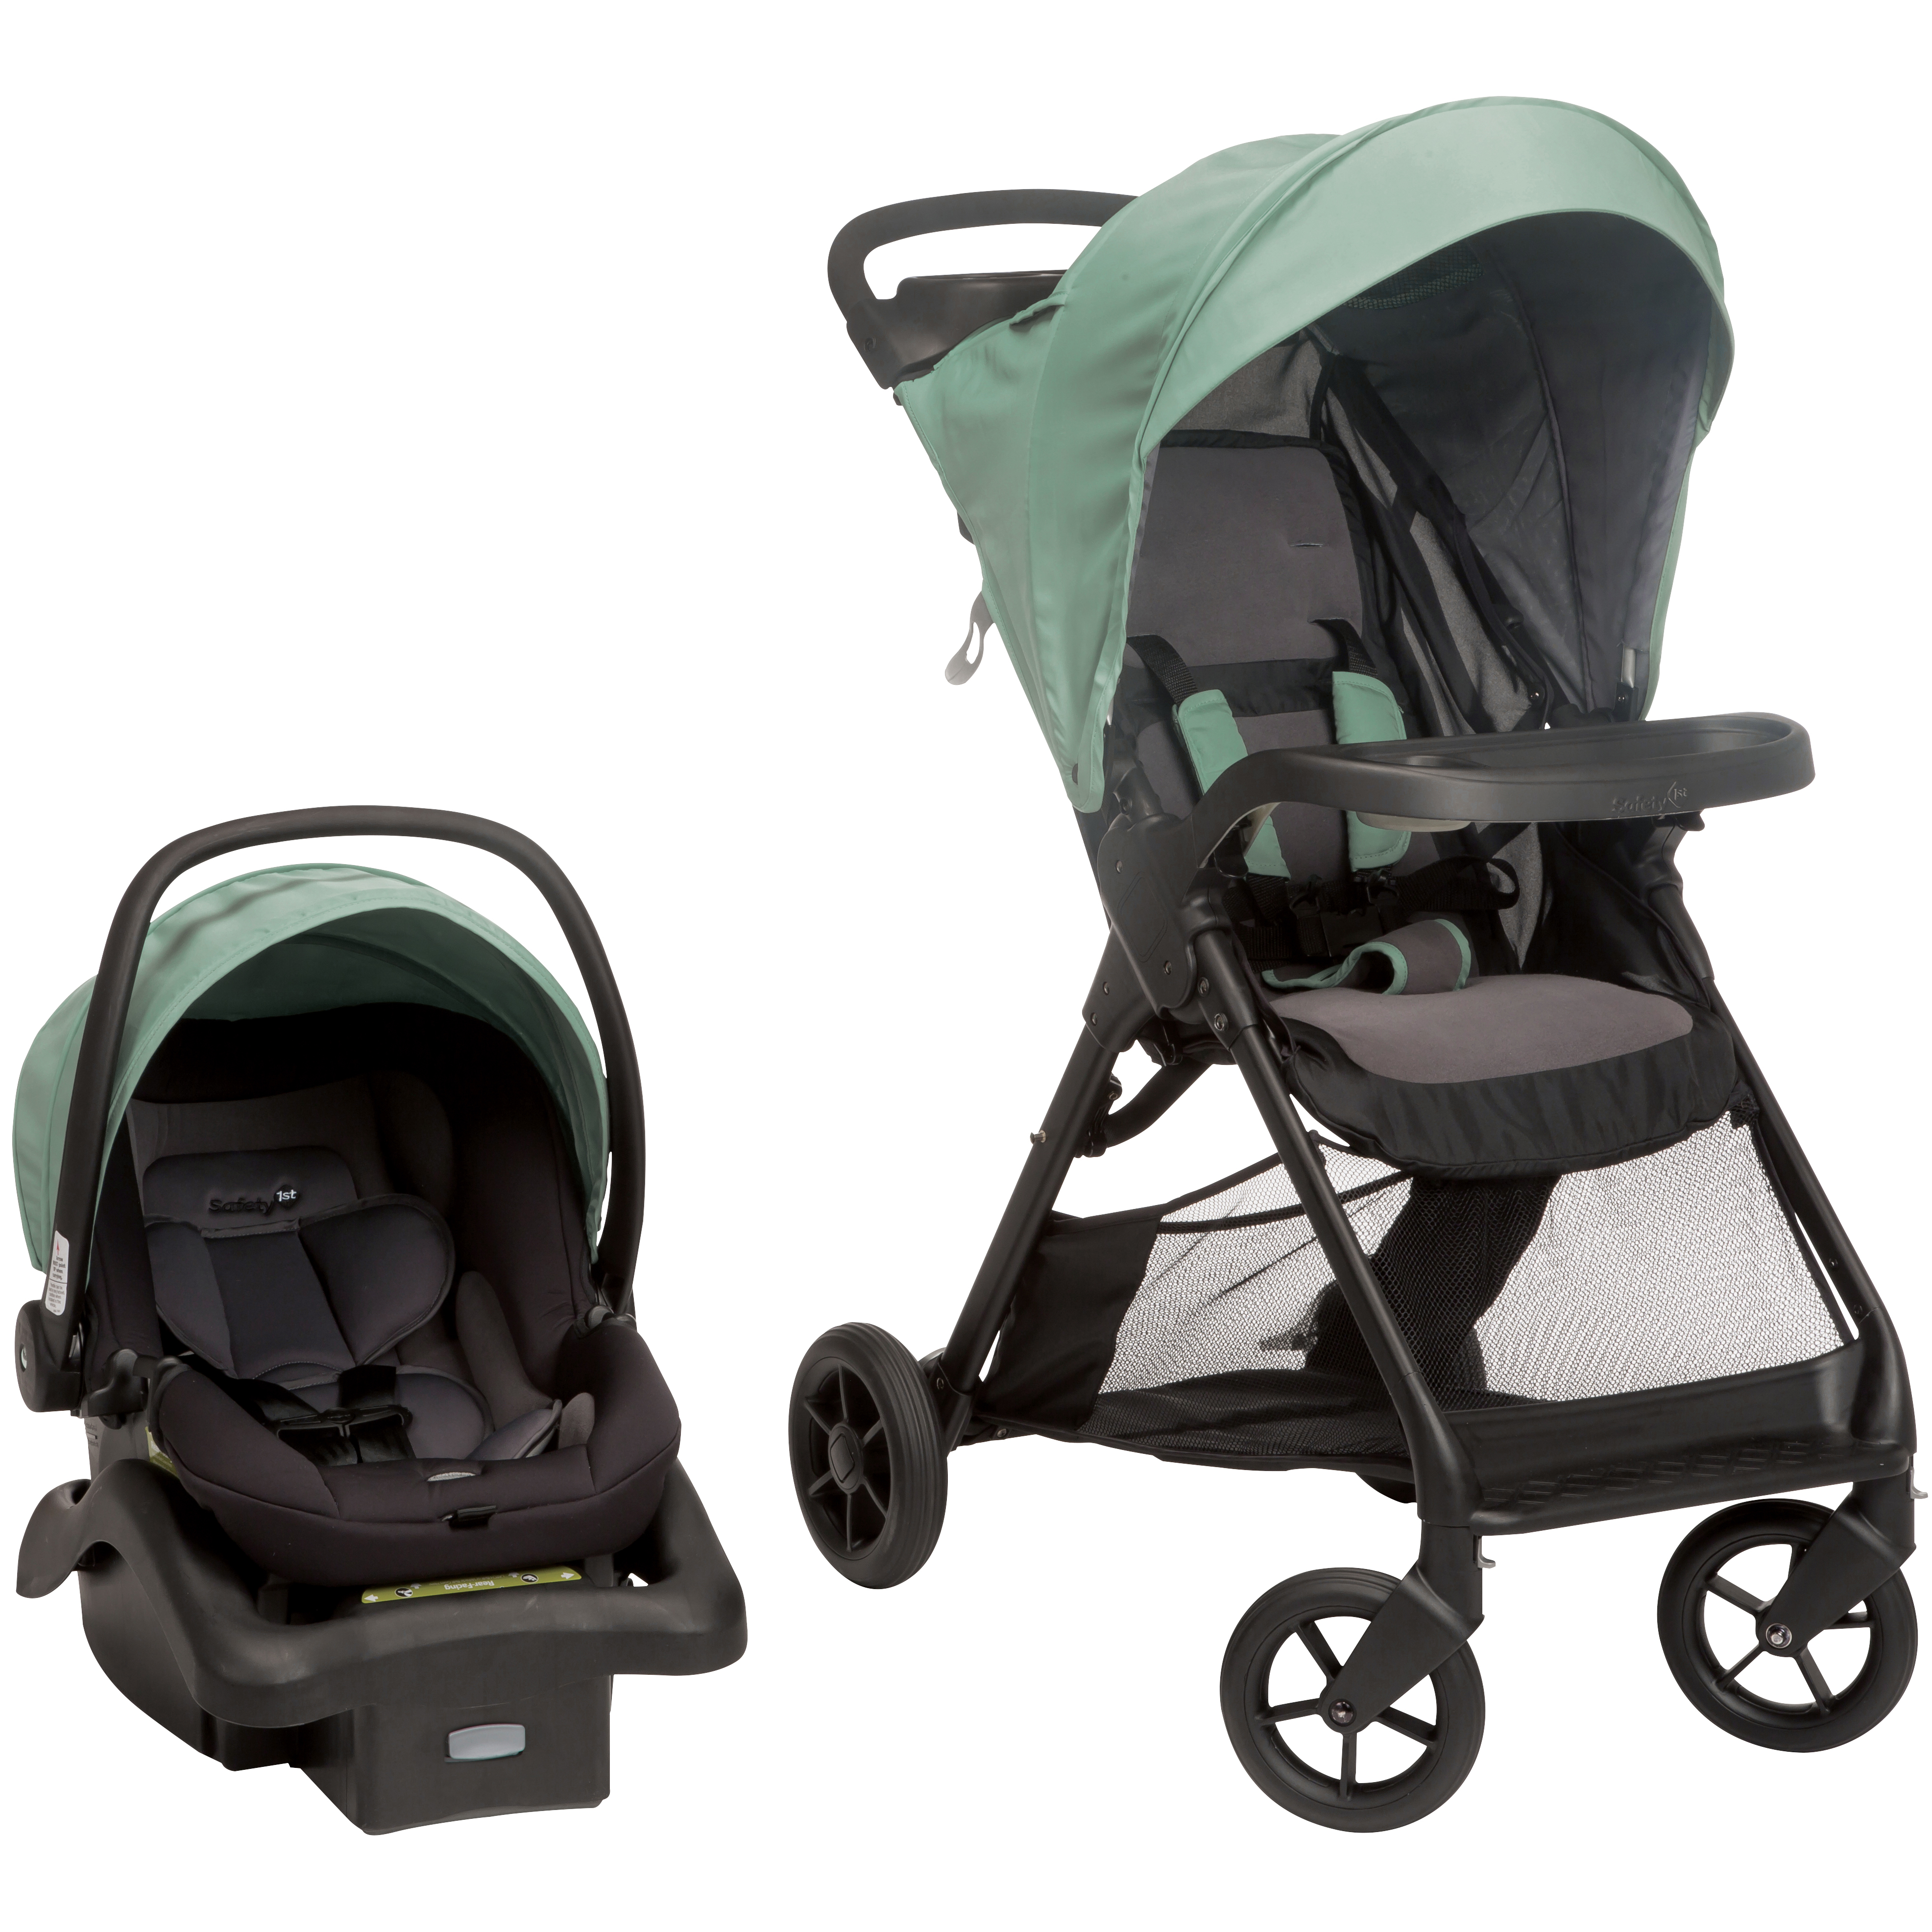 Safety 1st Smooth Ride Travel System, Moss Green